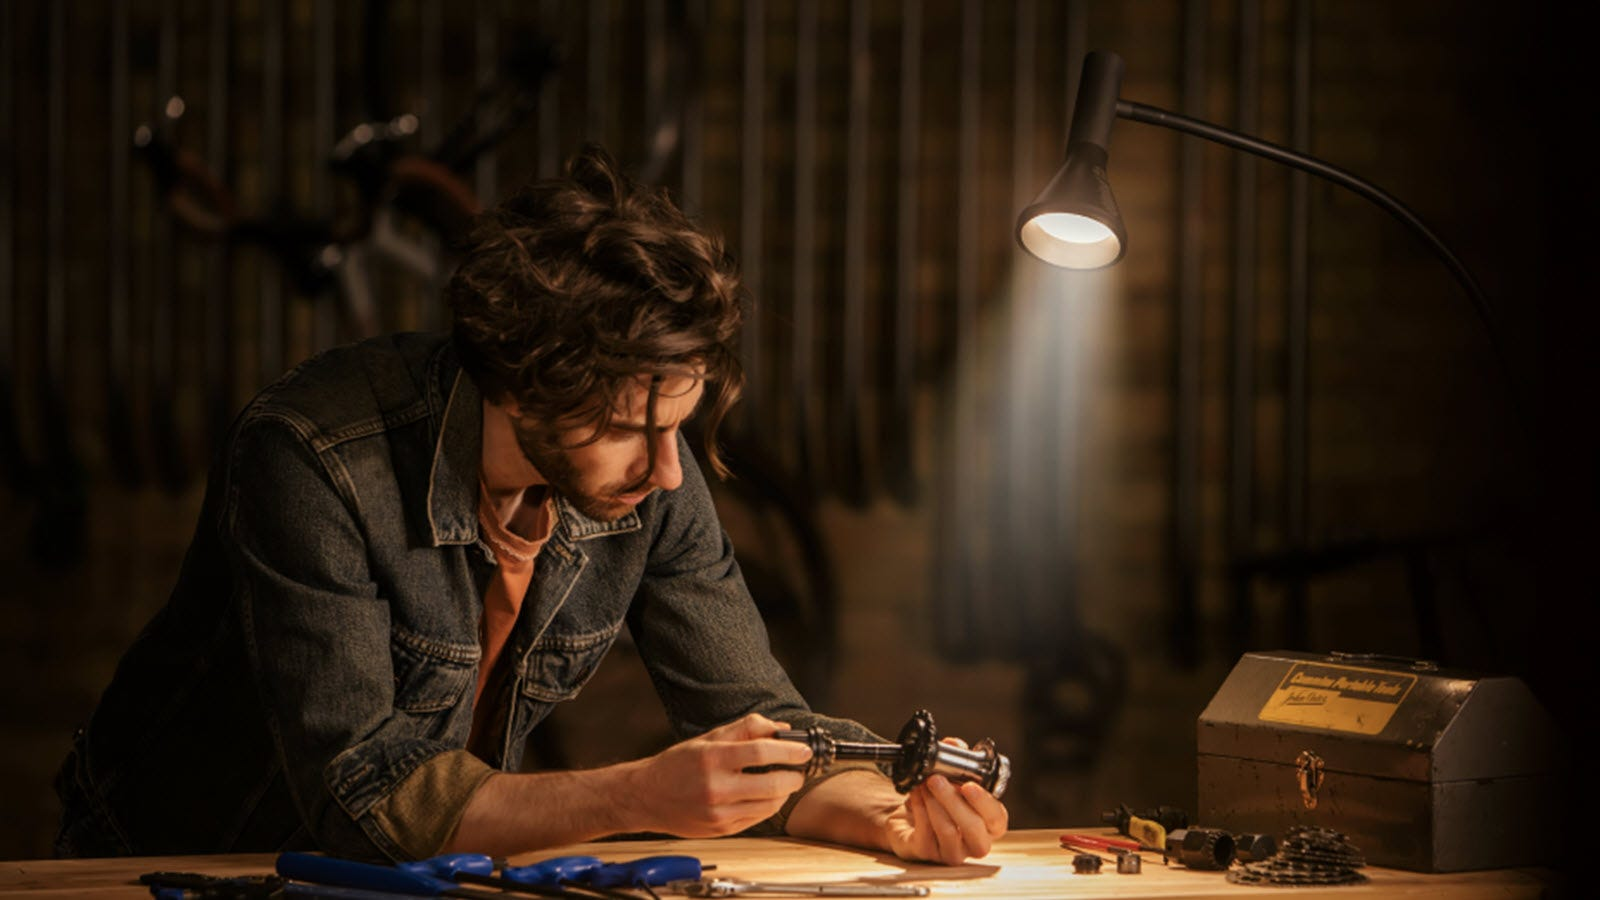 A man working on a toolbench under a floor lamp.